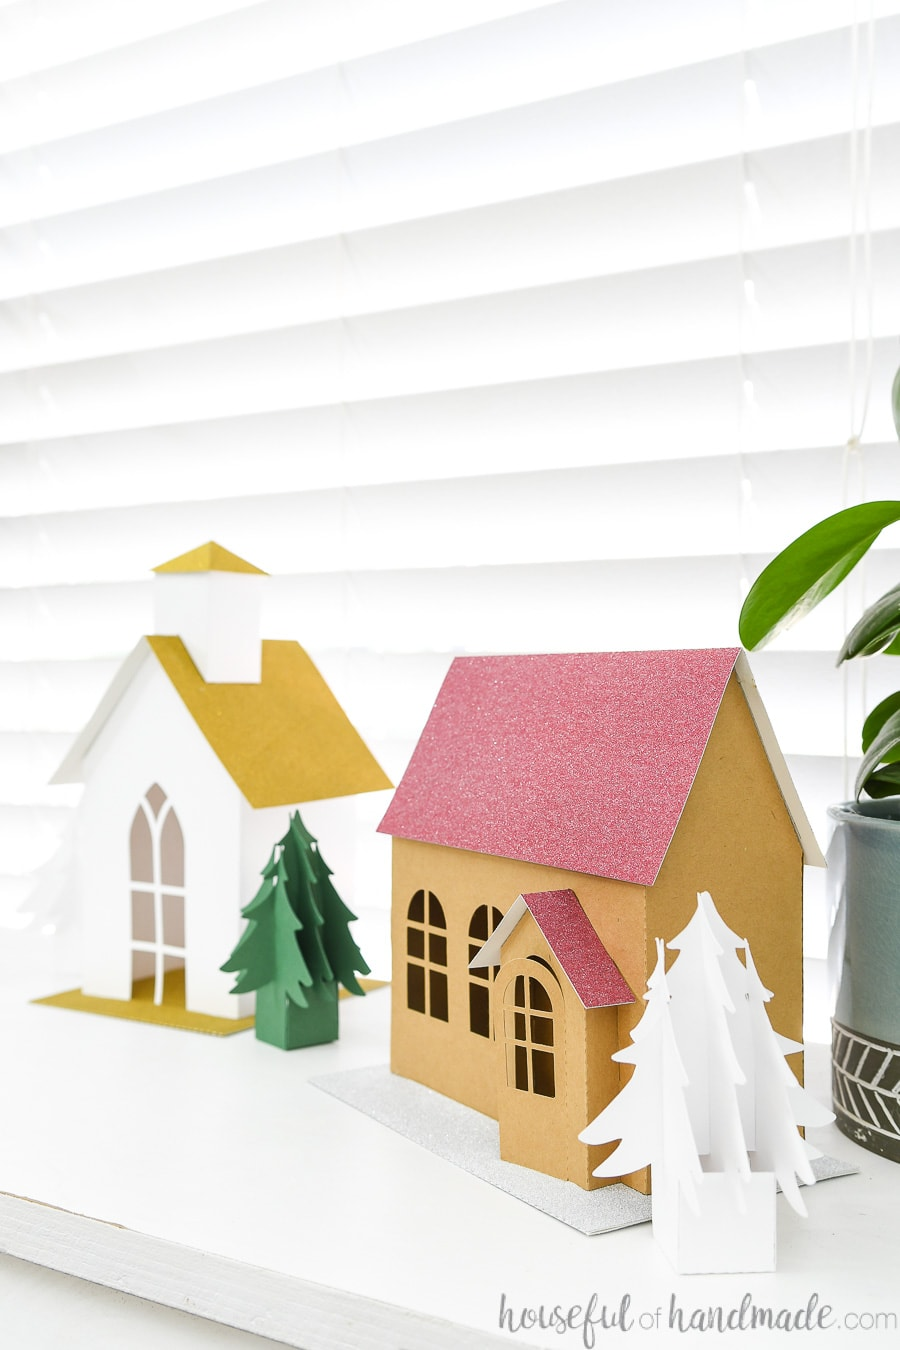 Side view of the classic Christmas house next to the white Christmas church made from paper.